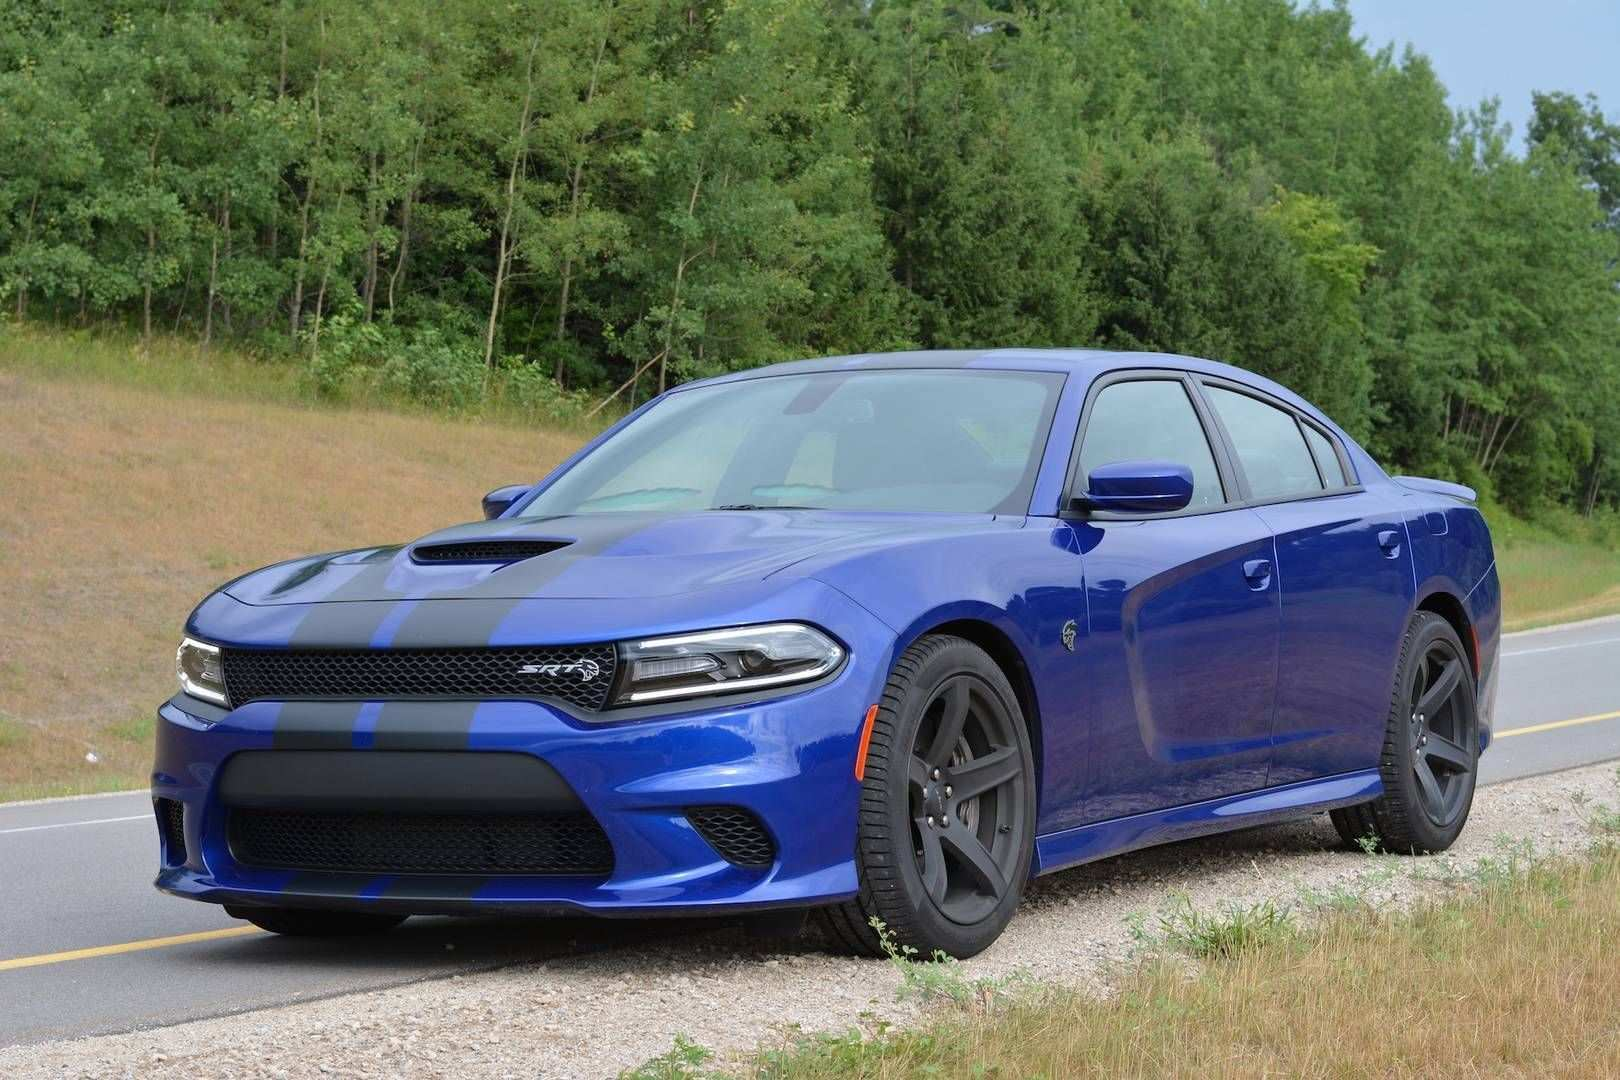 74 New The Dodge Charger 2019 Concept Spy Shoot Overview by The Dodge Charger 2019 Concept Spy Shoot